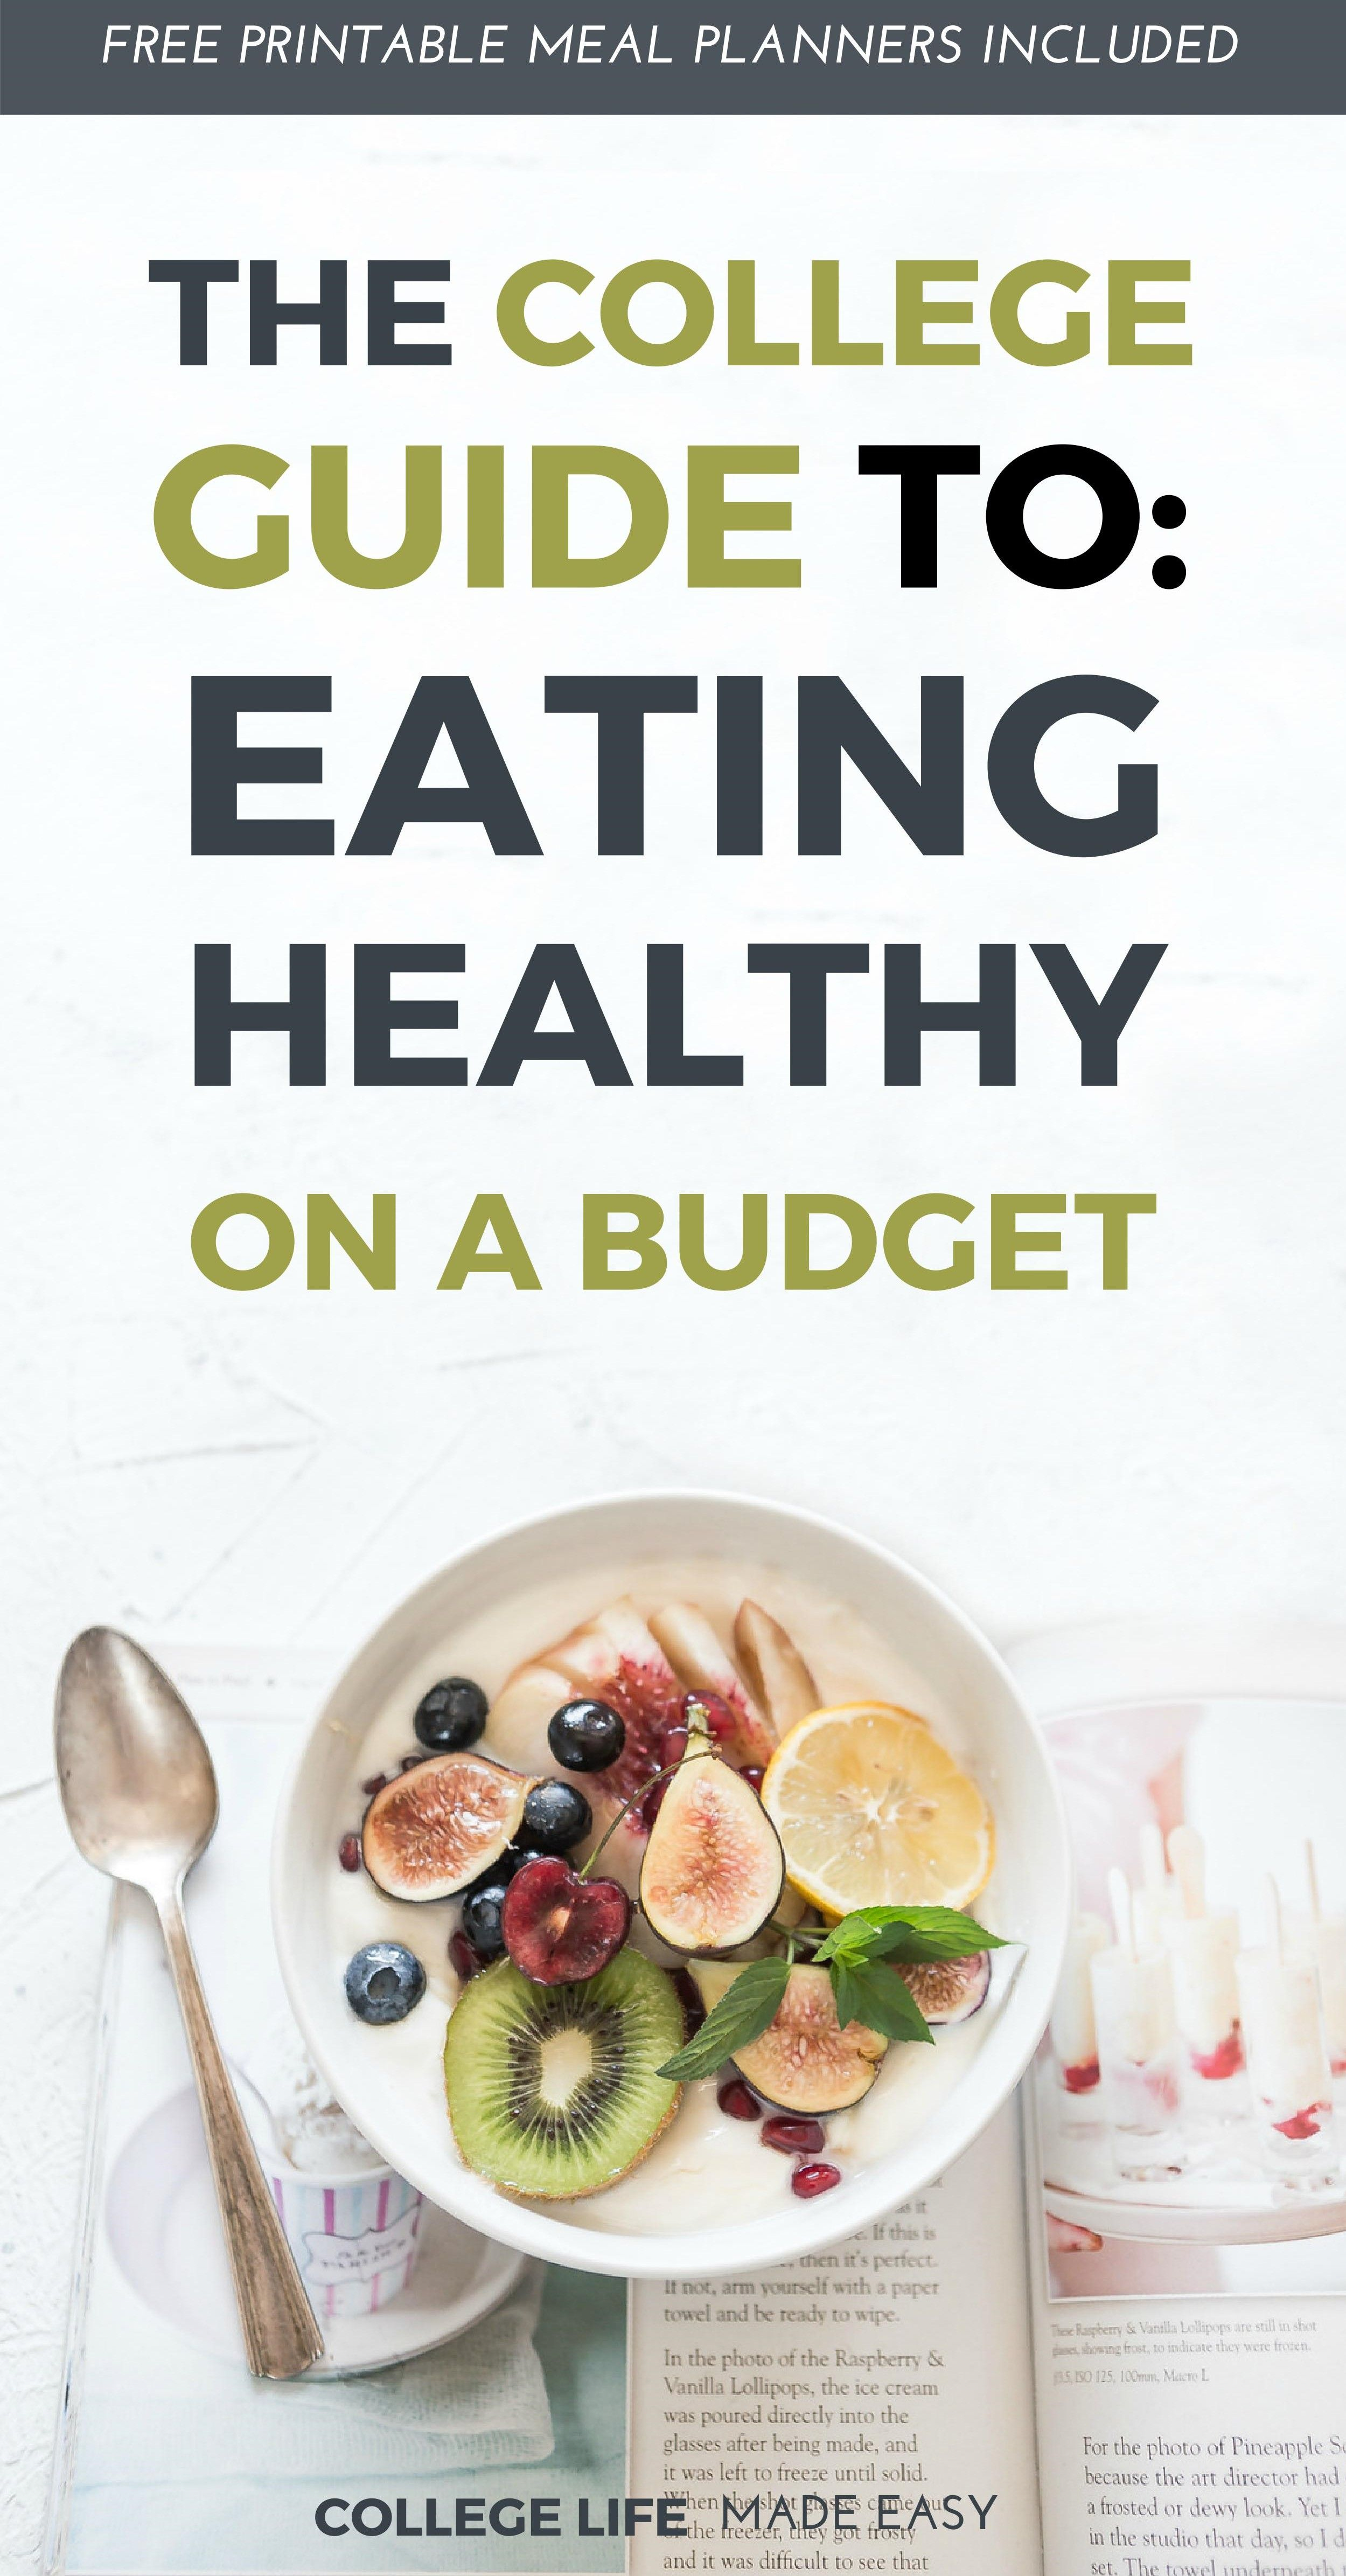 The College Guide To Eating Healthy On A Budget